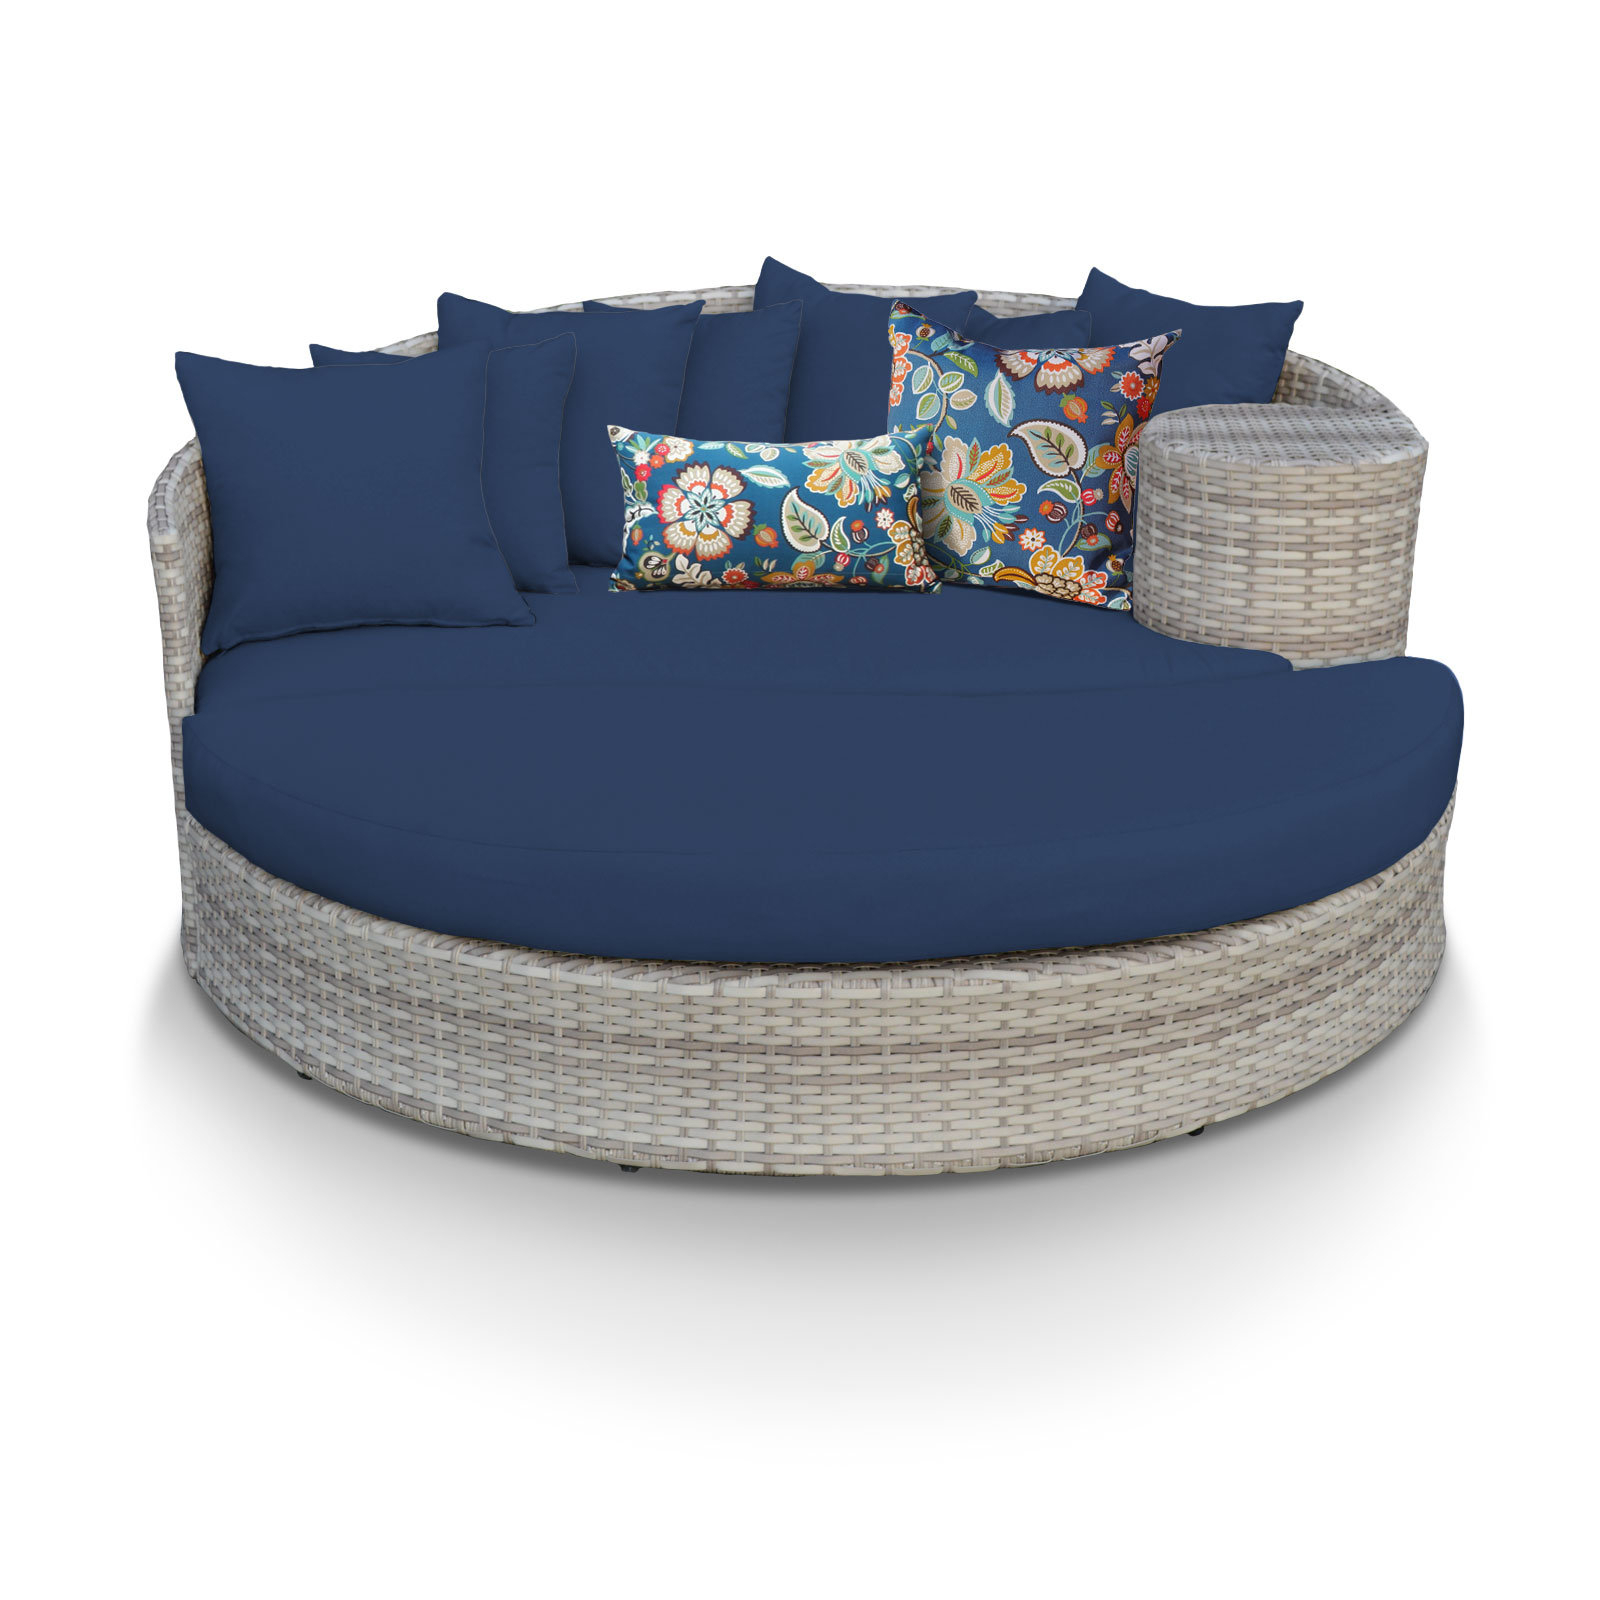 Falmouth Patio Daybeds With Cushions In Well Known Falmouth Patio Daybed With Cushions (View 2 of 20)